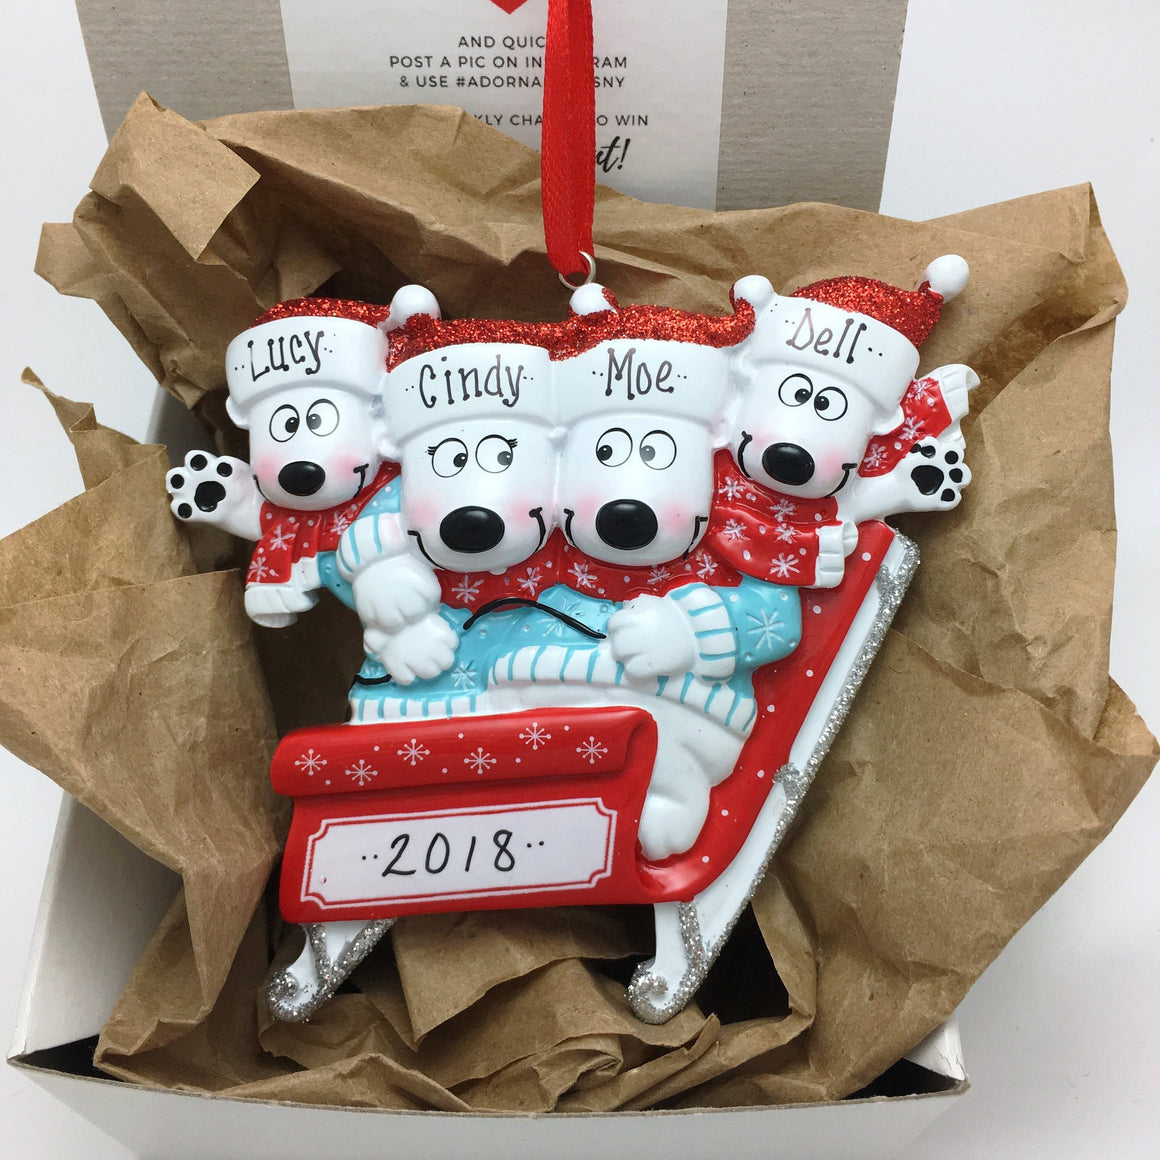 4 Polar Bears Sledding Personalized Christmas Ornament